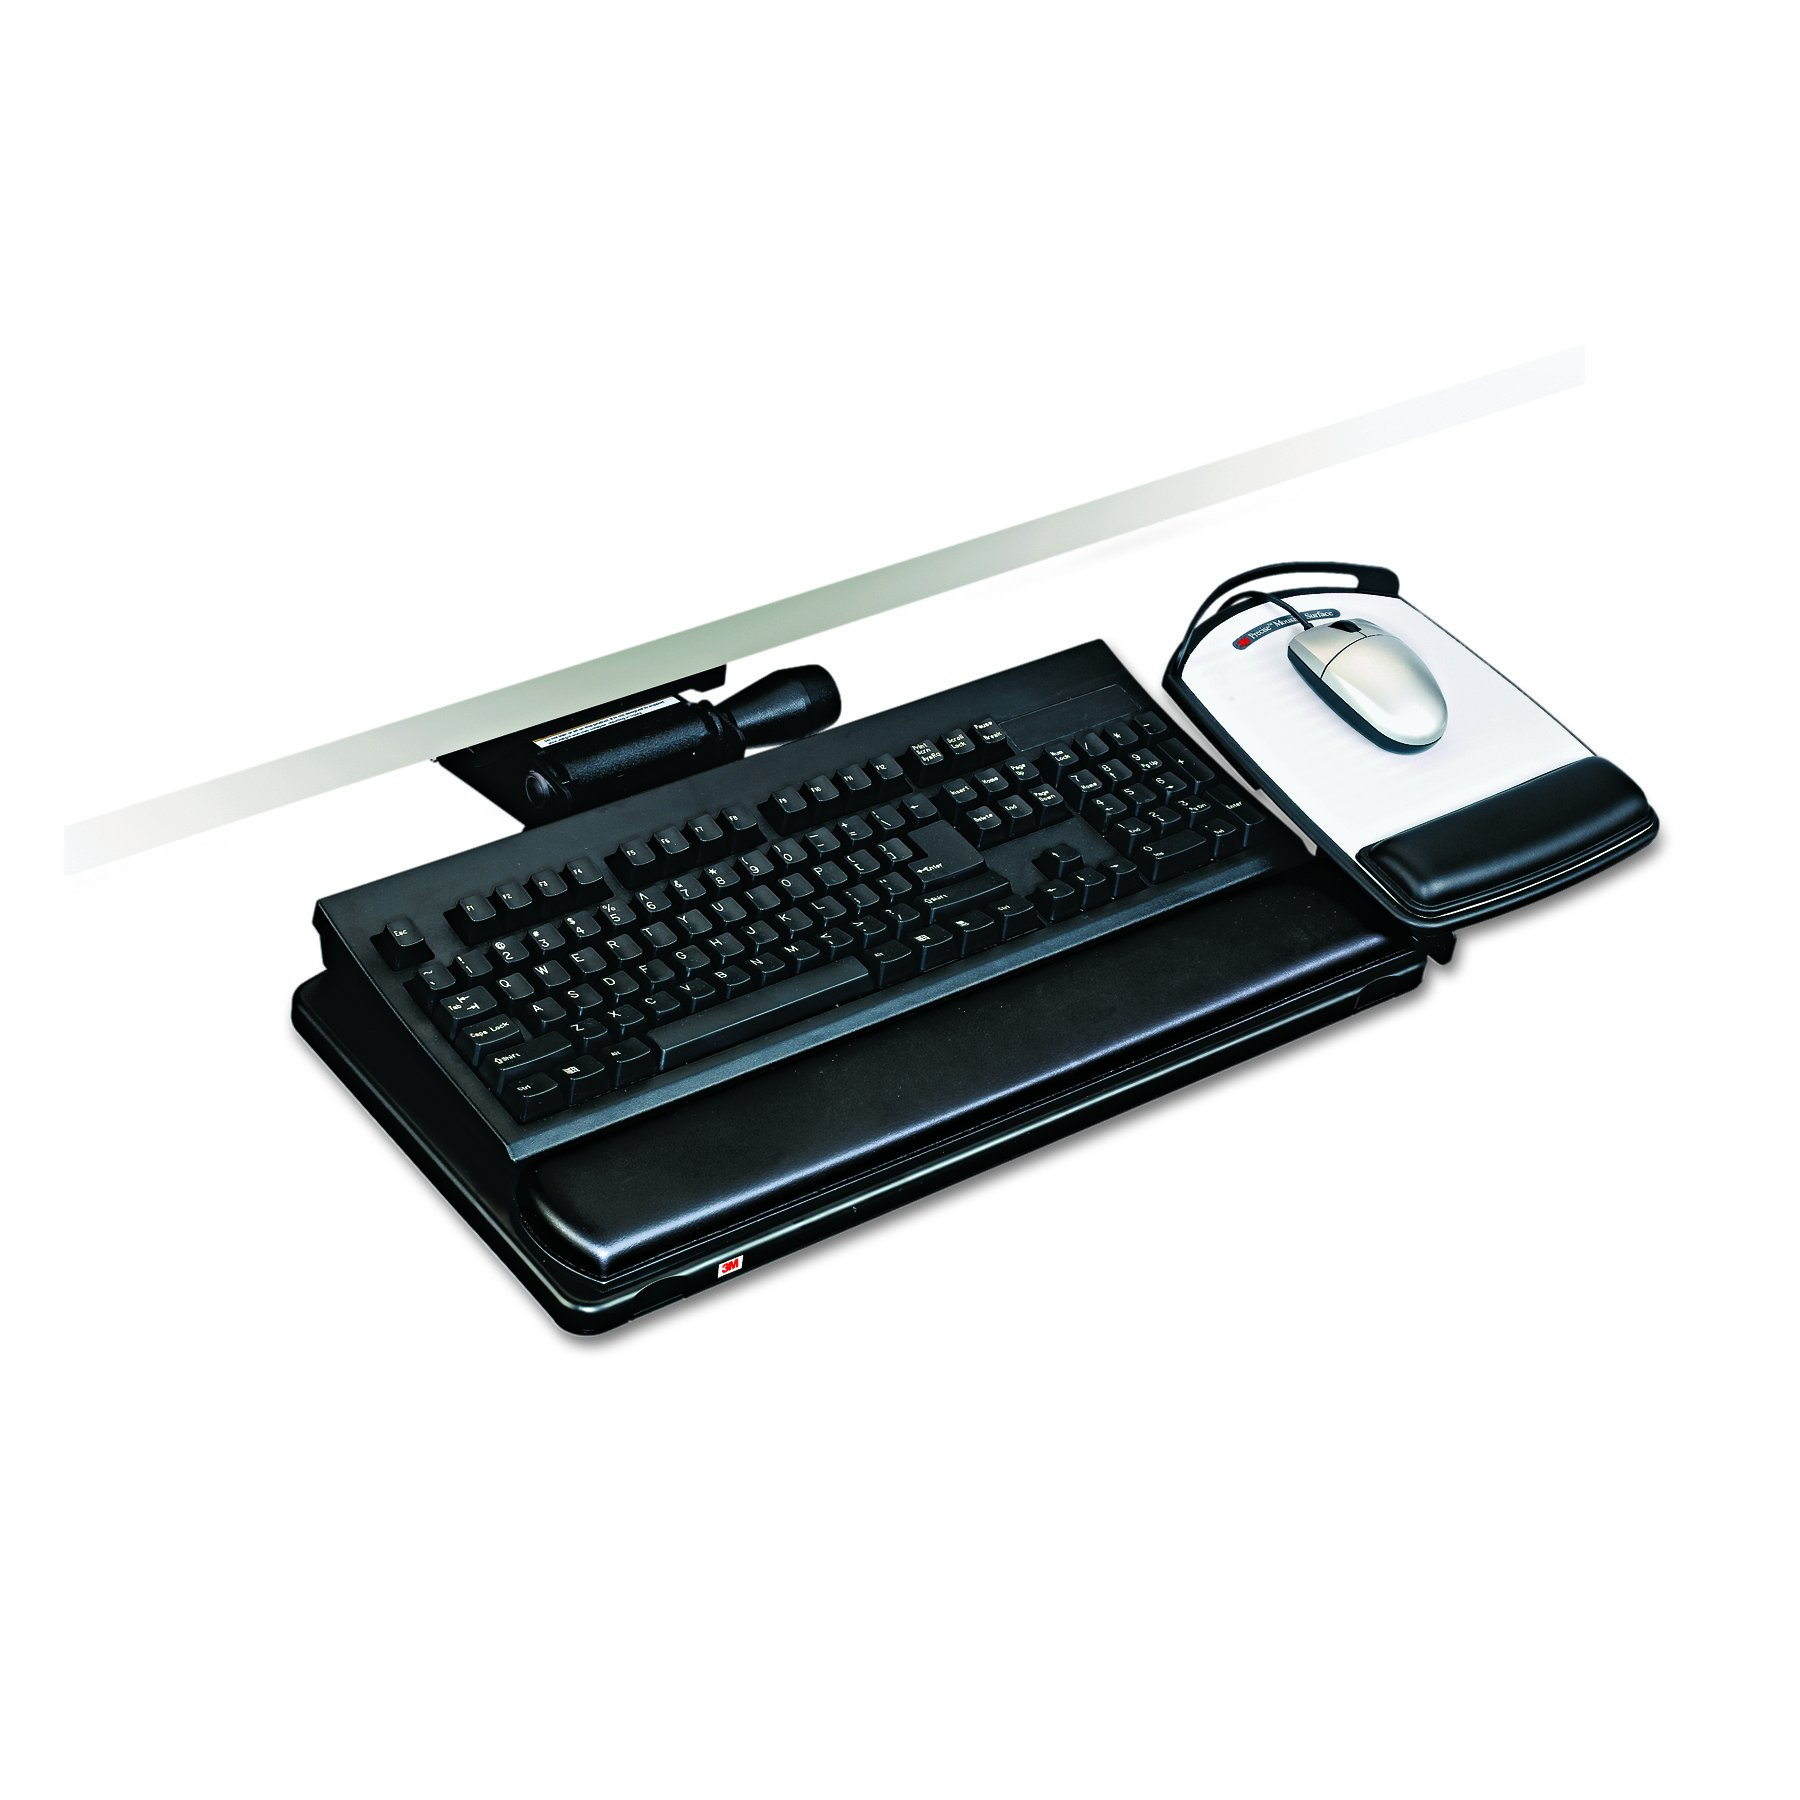 3M AKT151LE Easy Adjust Keyboard Tray With Highly Adjustable Platform, 17 3/4'' Track, Black